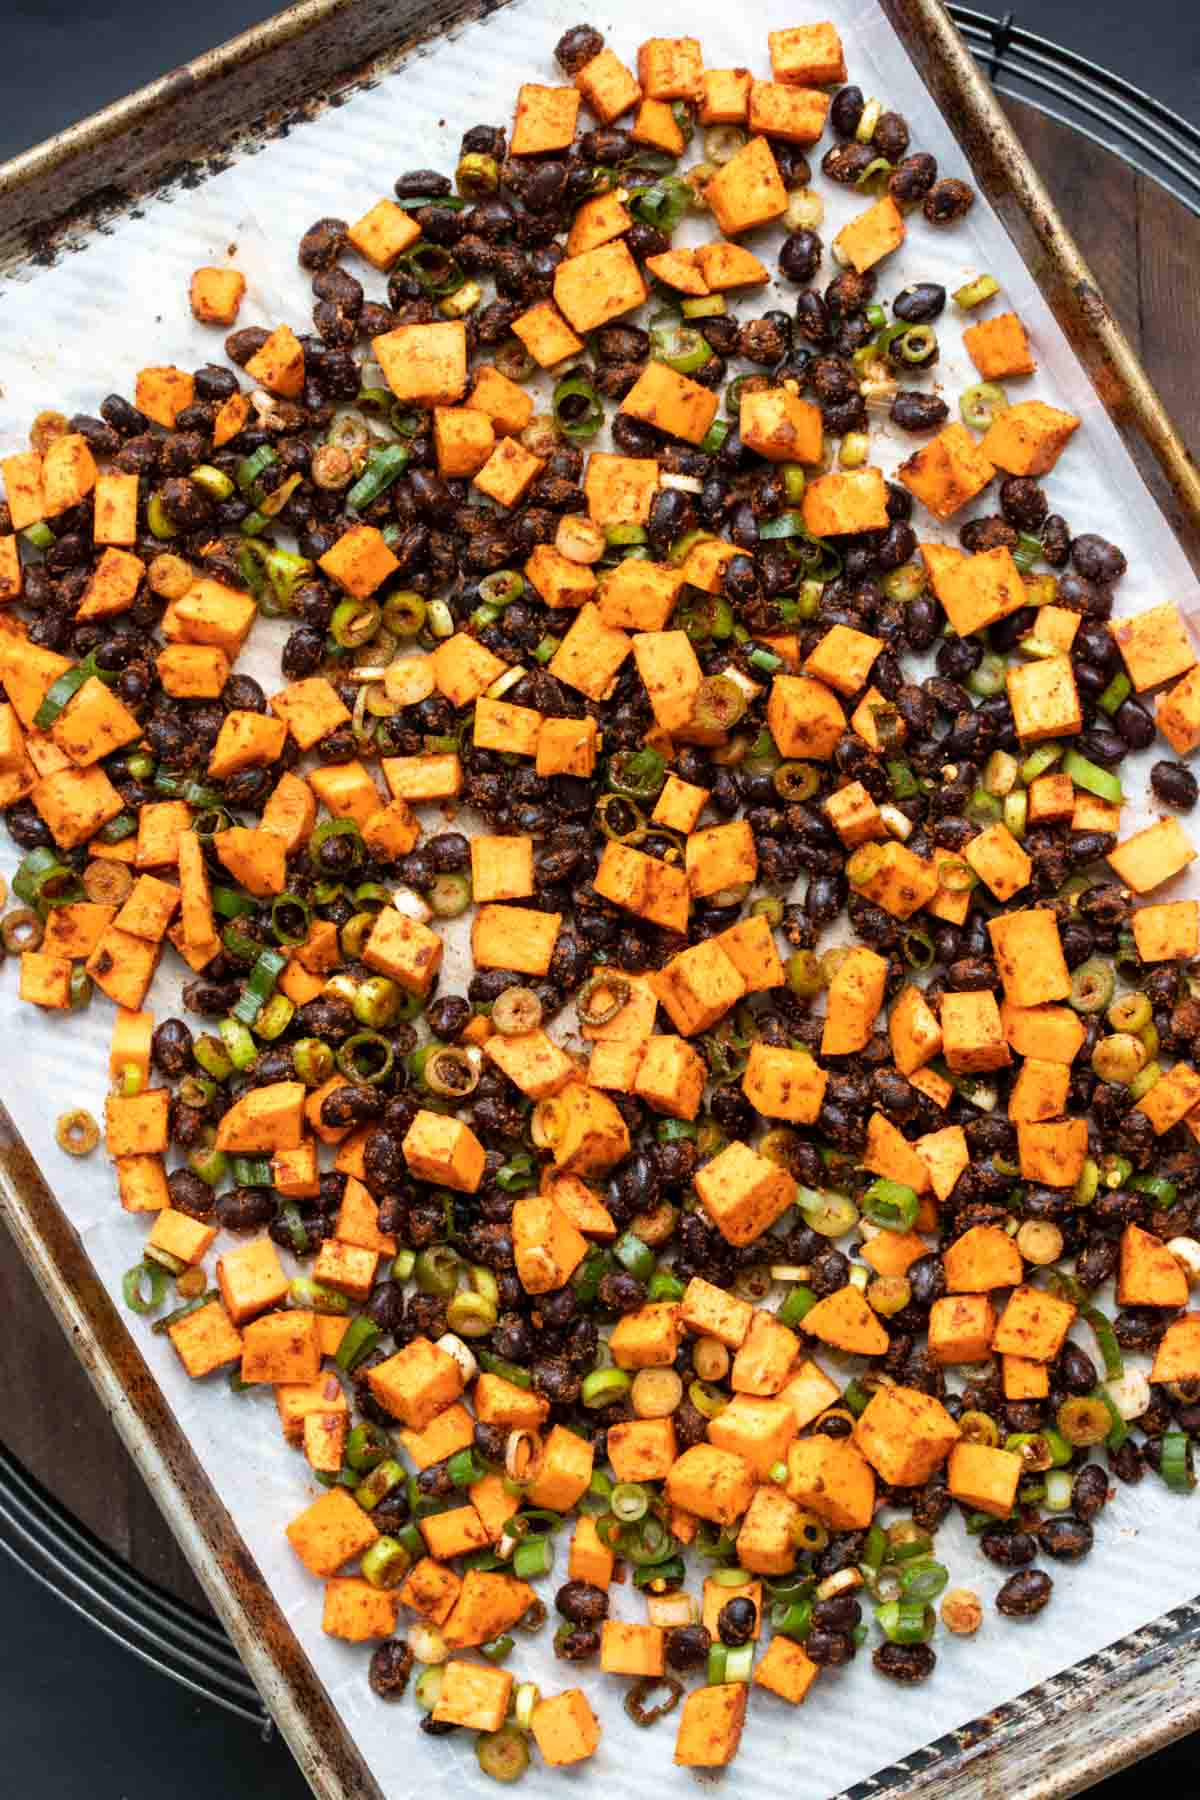 Pan with chopped sweet potato, black beans and green onion on parchment paper